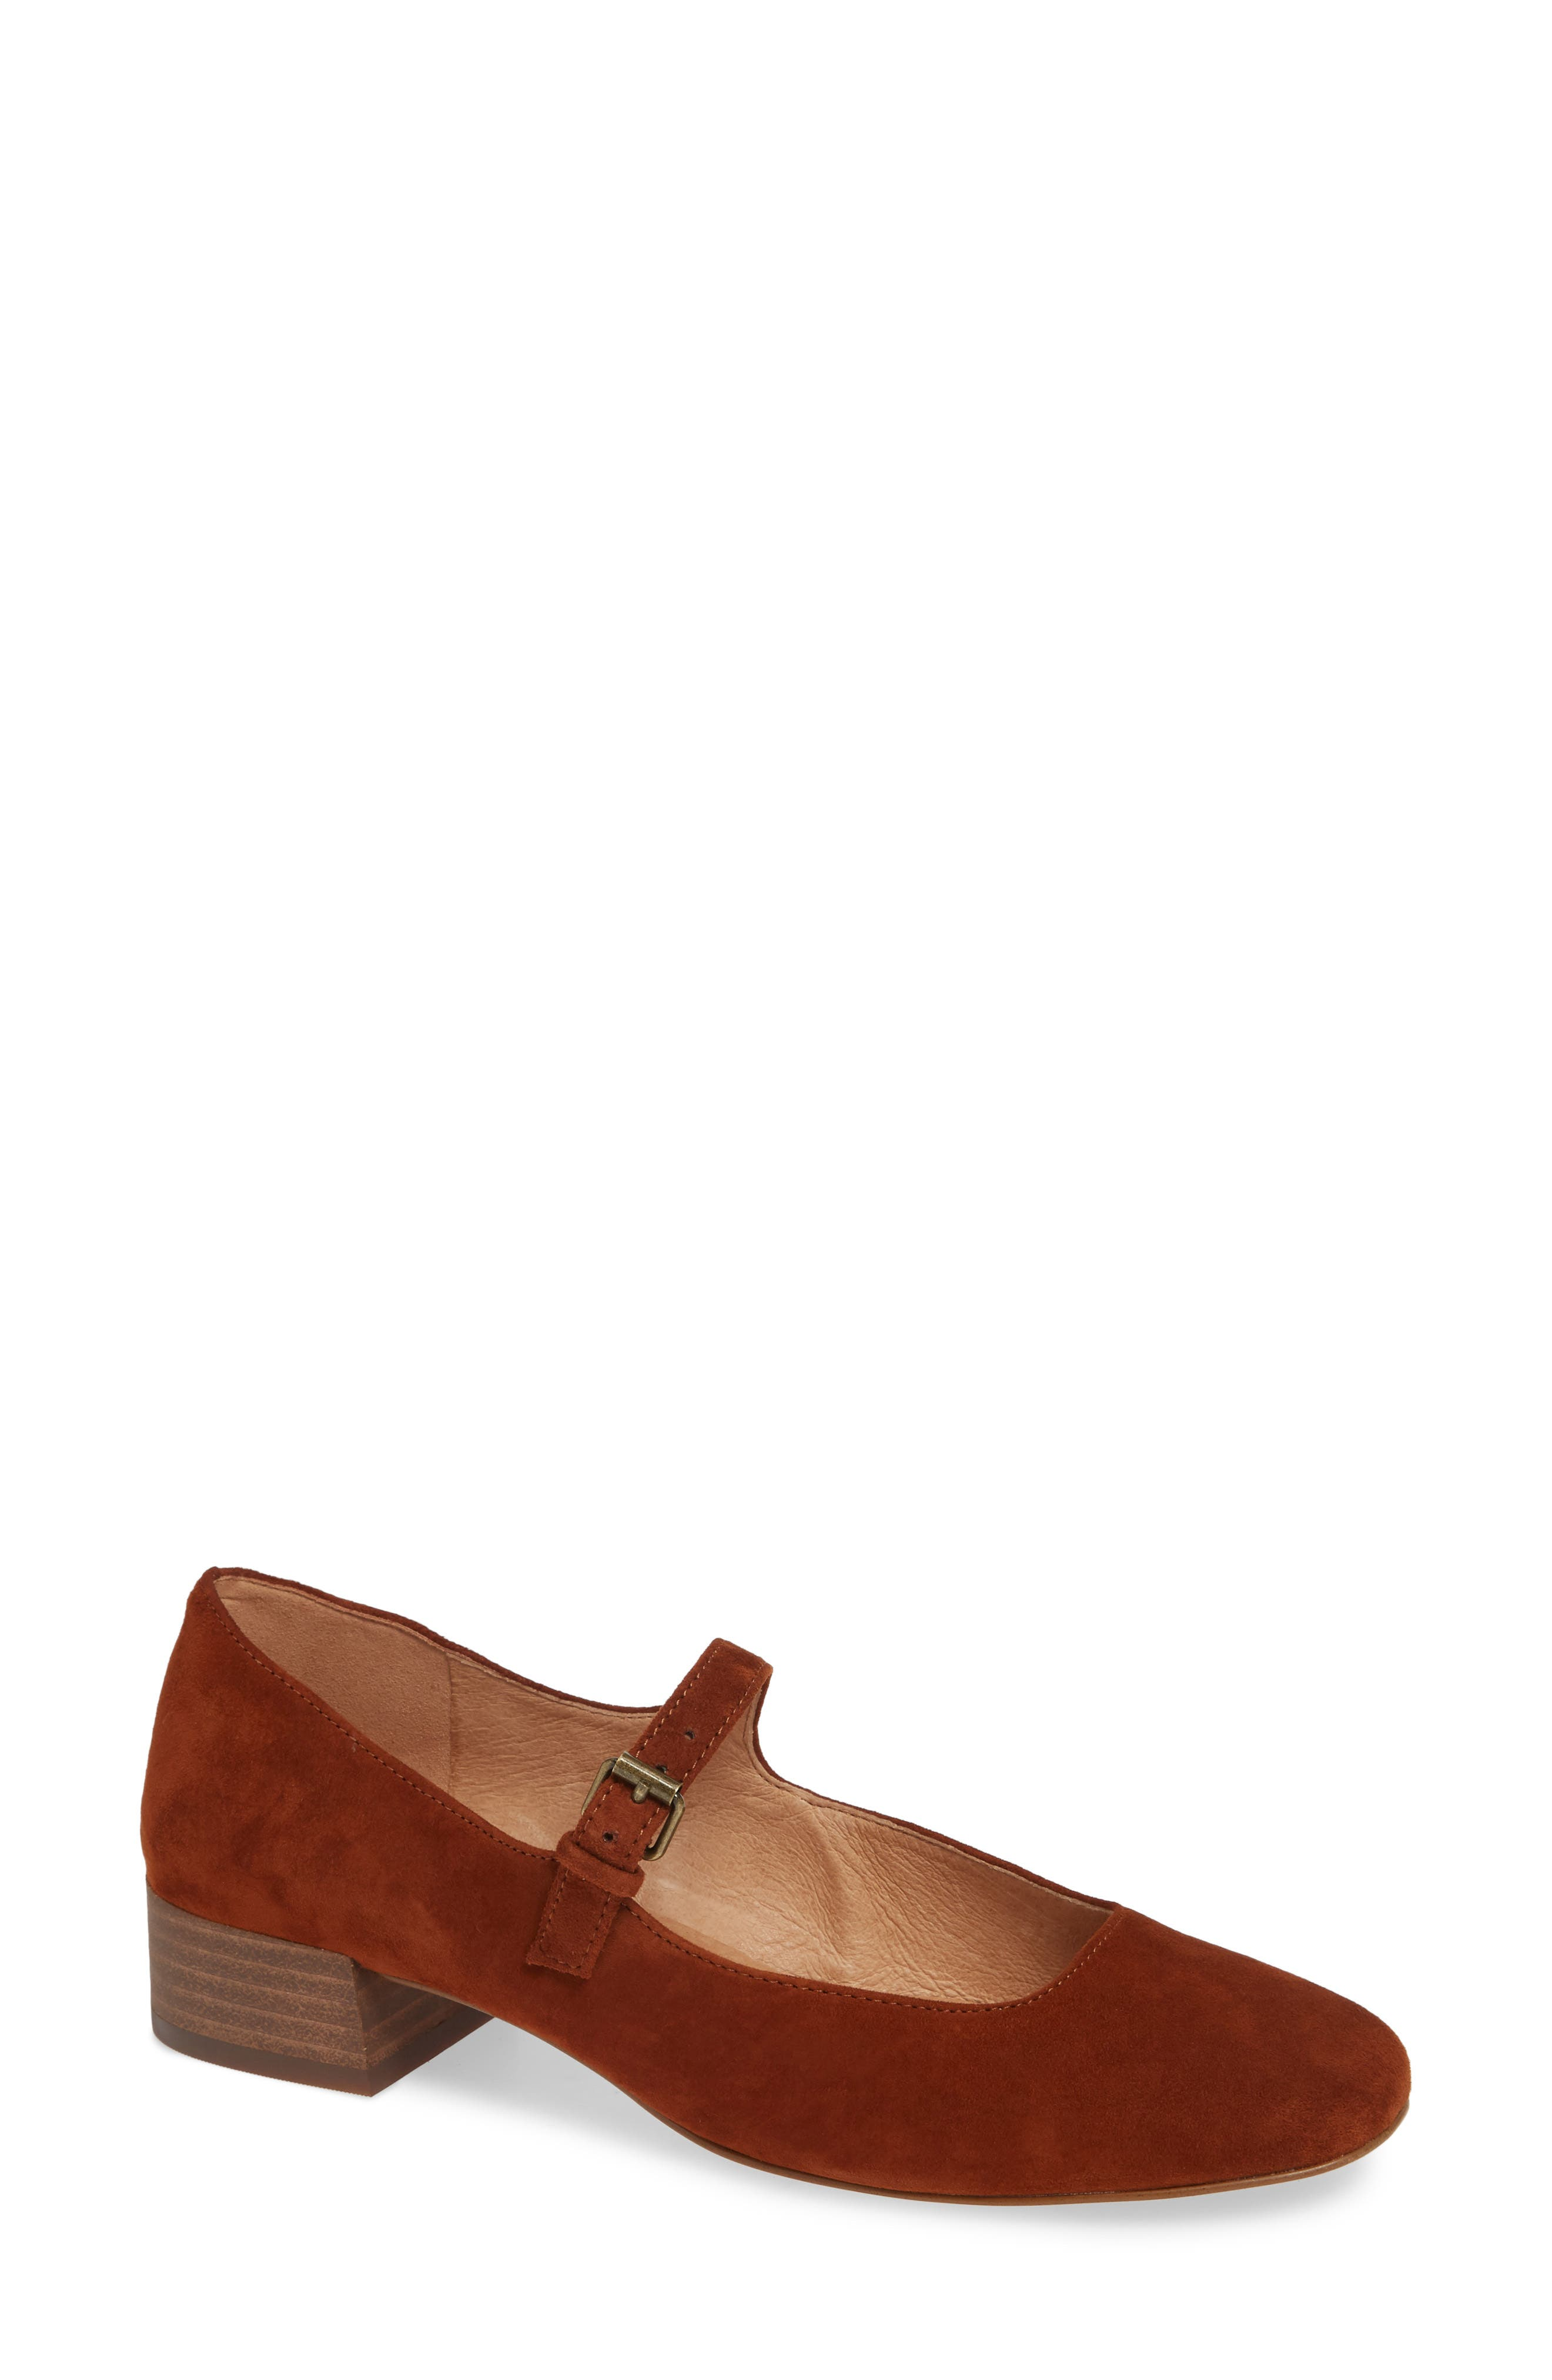 The Delilah Mary Jane Pump,                         Main,                         color, MAPLE SYRUP SUEDE